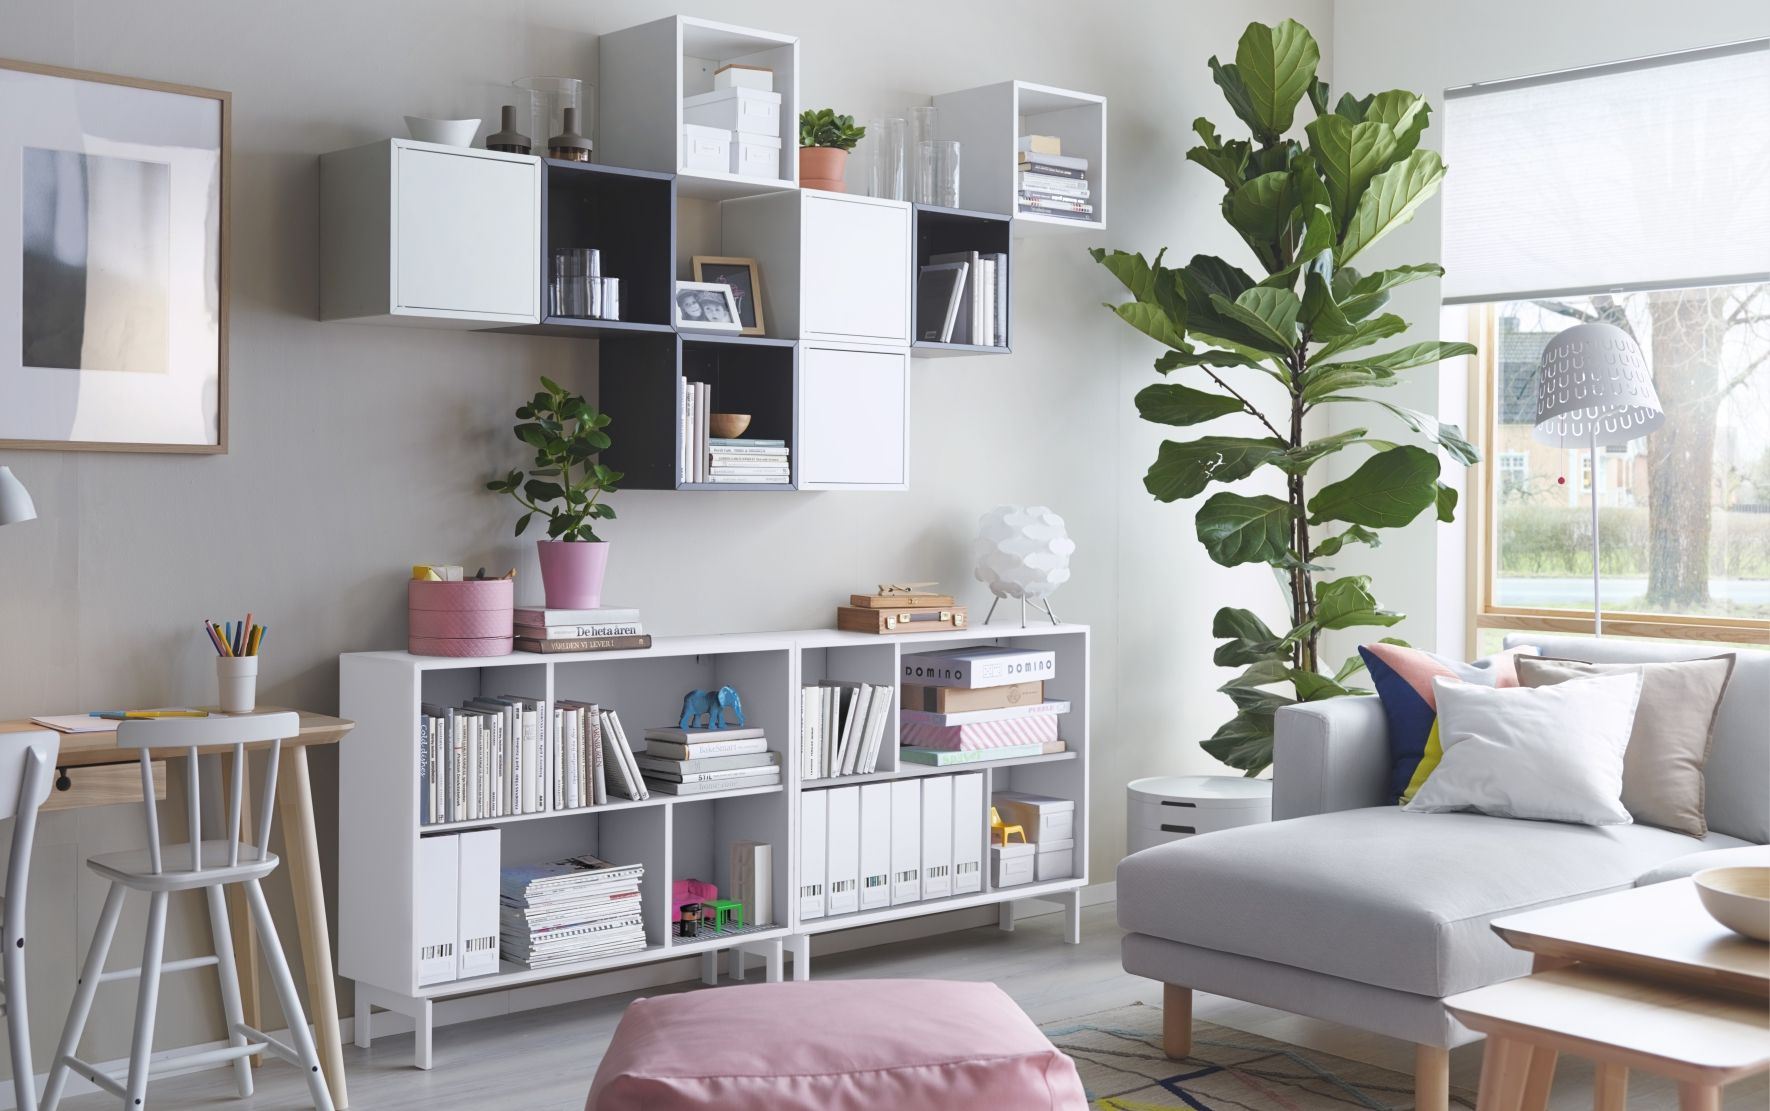 Living Room Spaces 8 Clever Small Room Storage Ideas Small Space Solutions